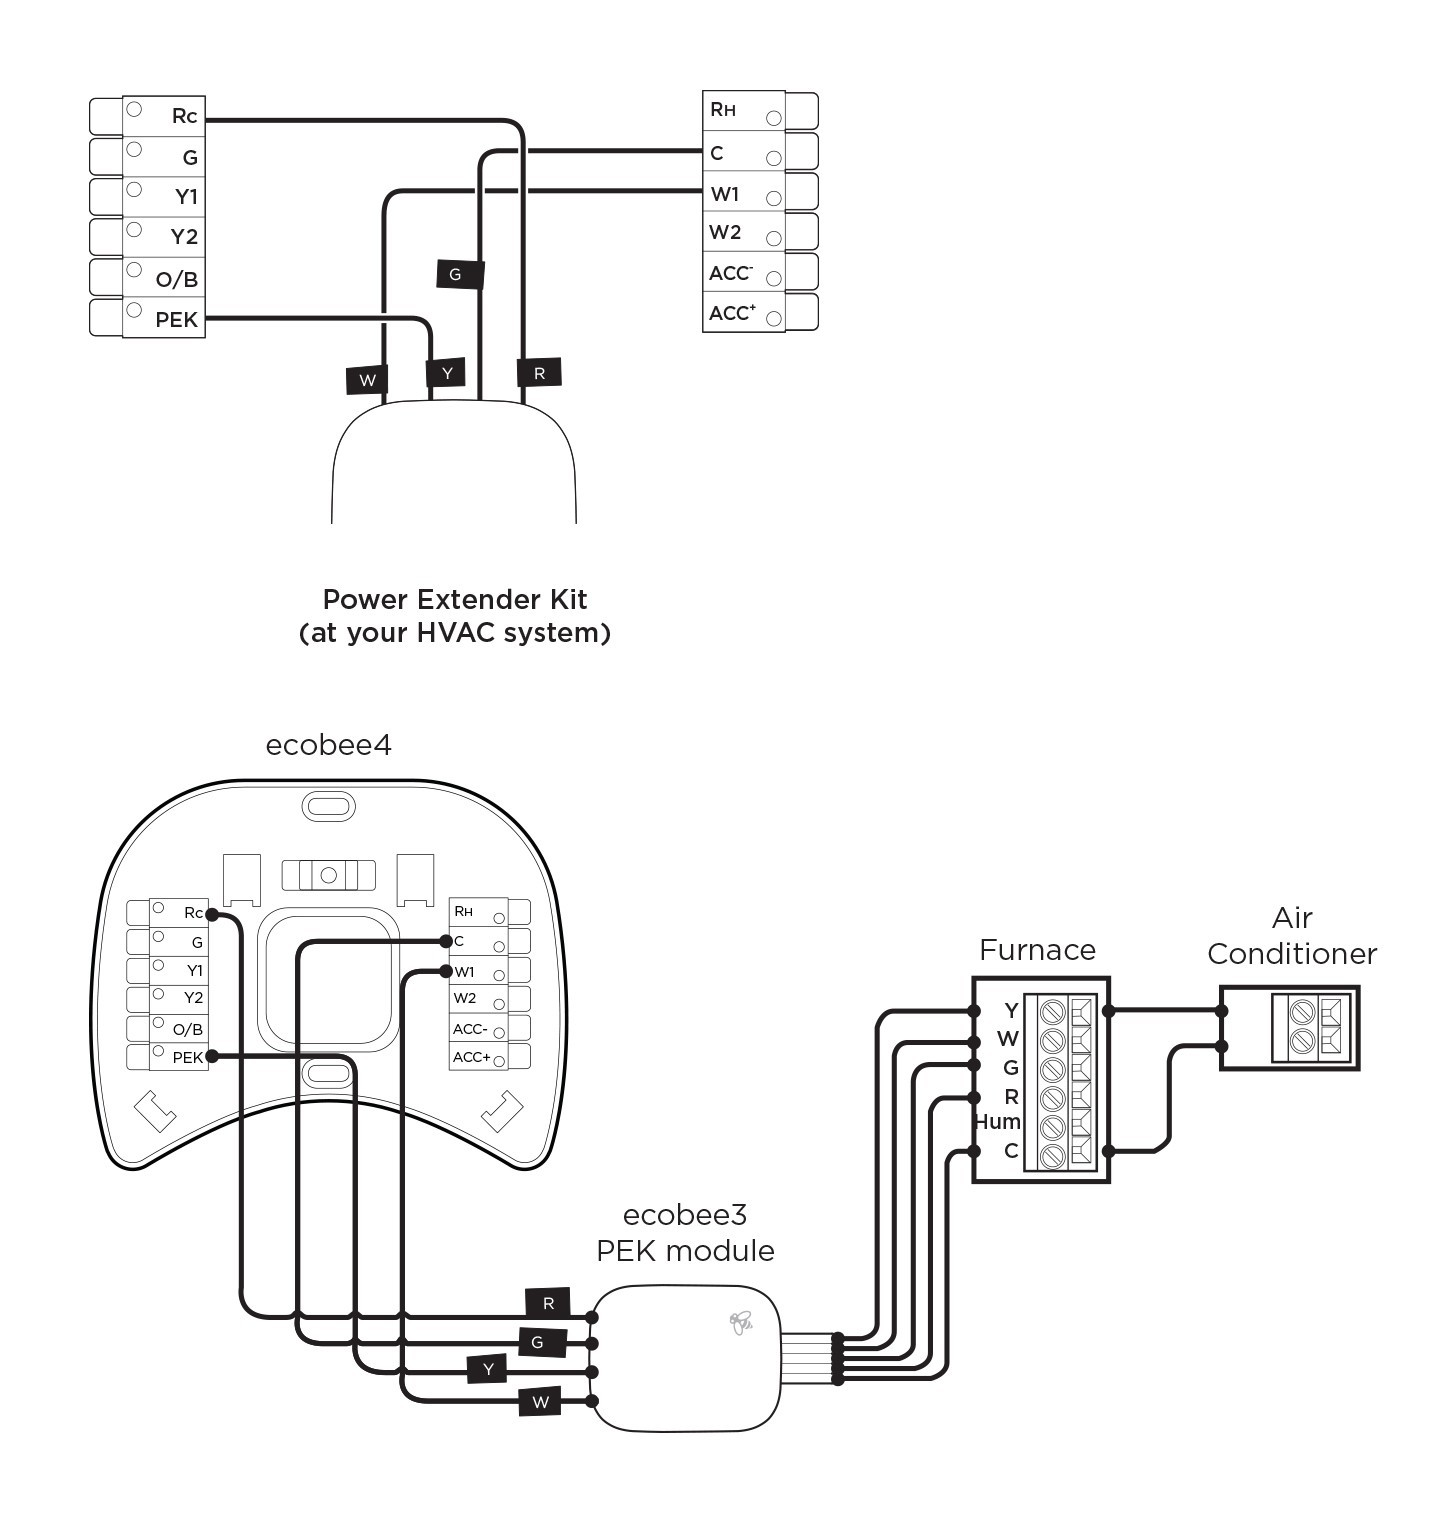 Ecobee3 Wiring Diagram New I M Upgrading From Ecobee3 to Ecobee4 What Wiring Changes Do I Need